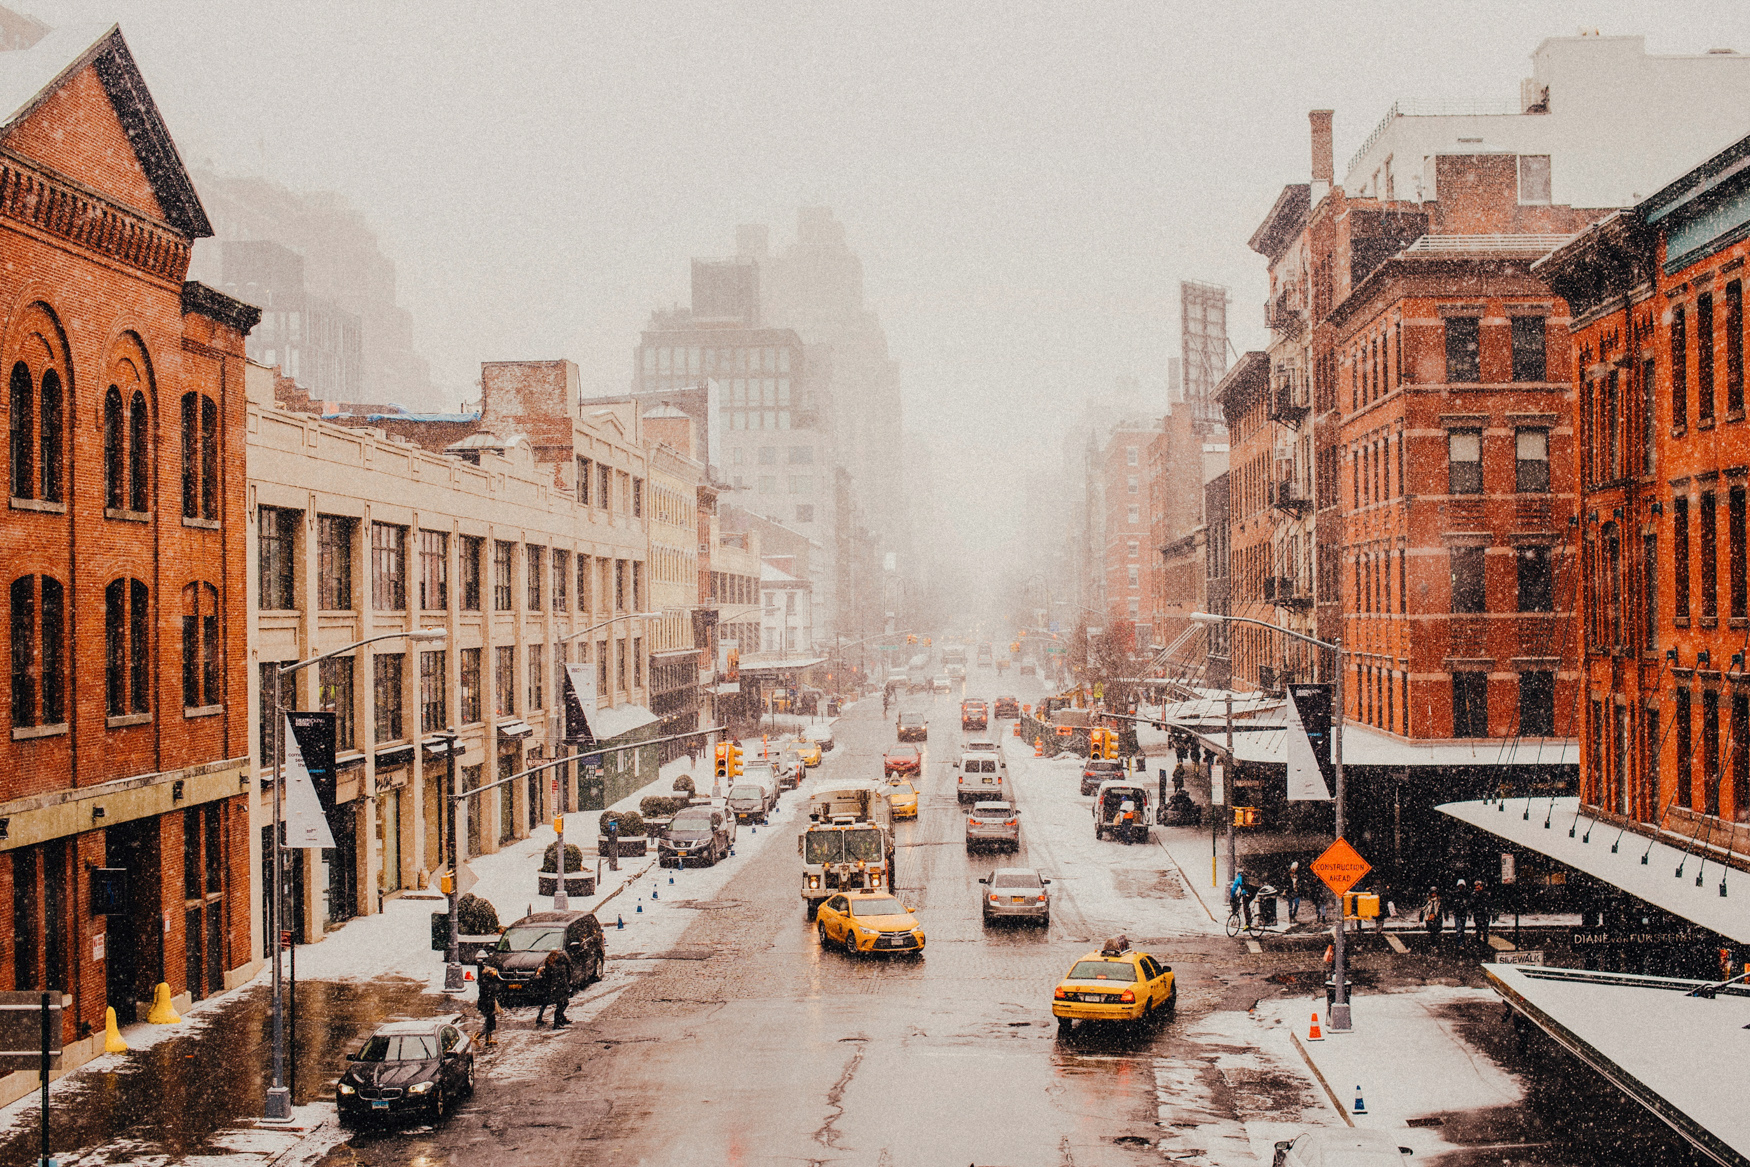 nyc winter snowy manthattan engagement session 015.jpg